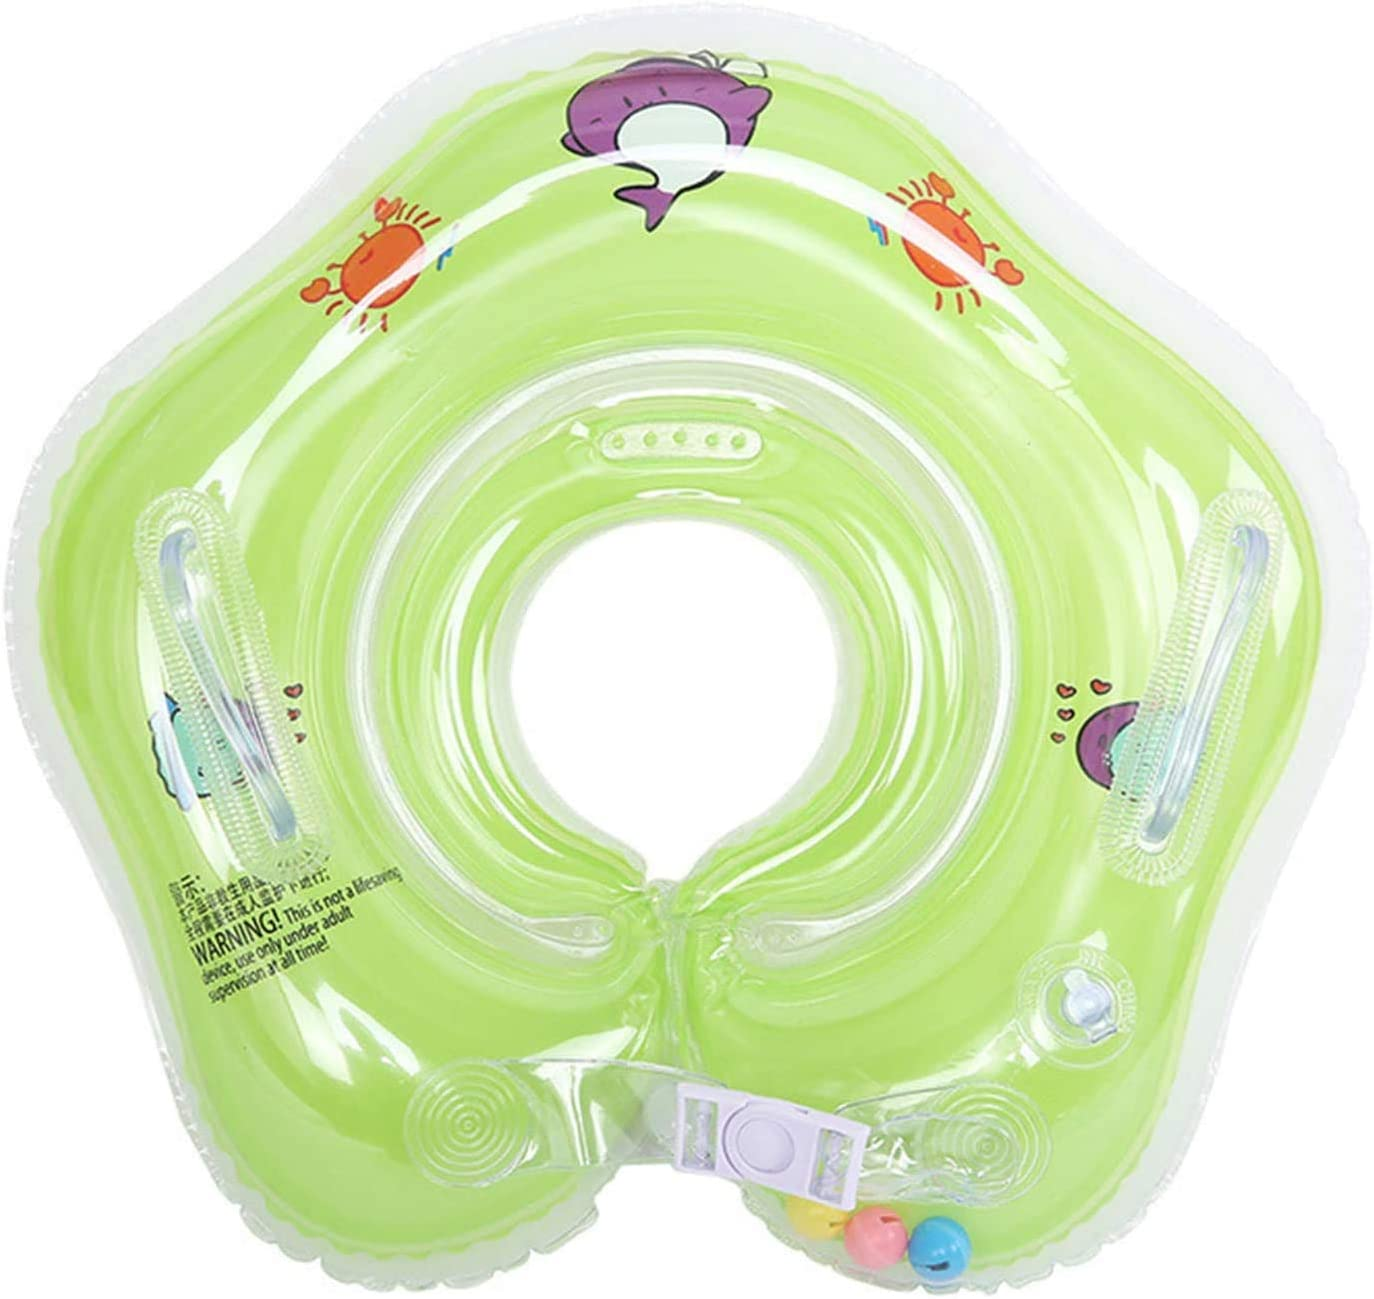 Kids Swimming Ring, Kids Inflatable Ring for Bath Swimming